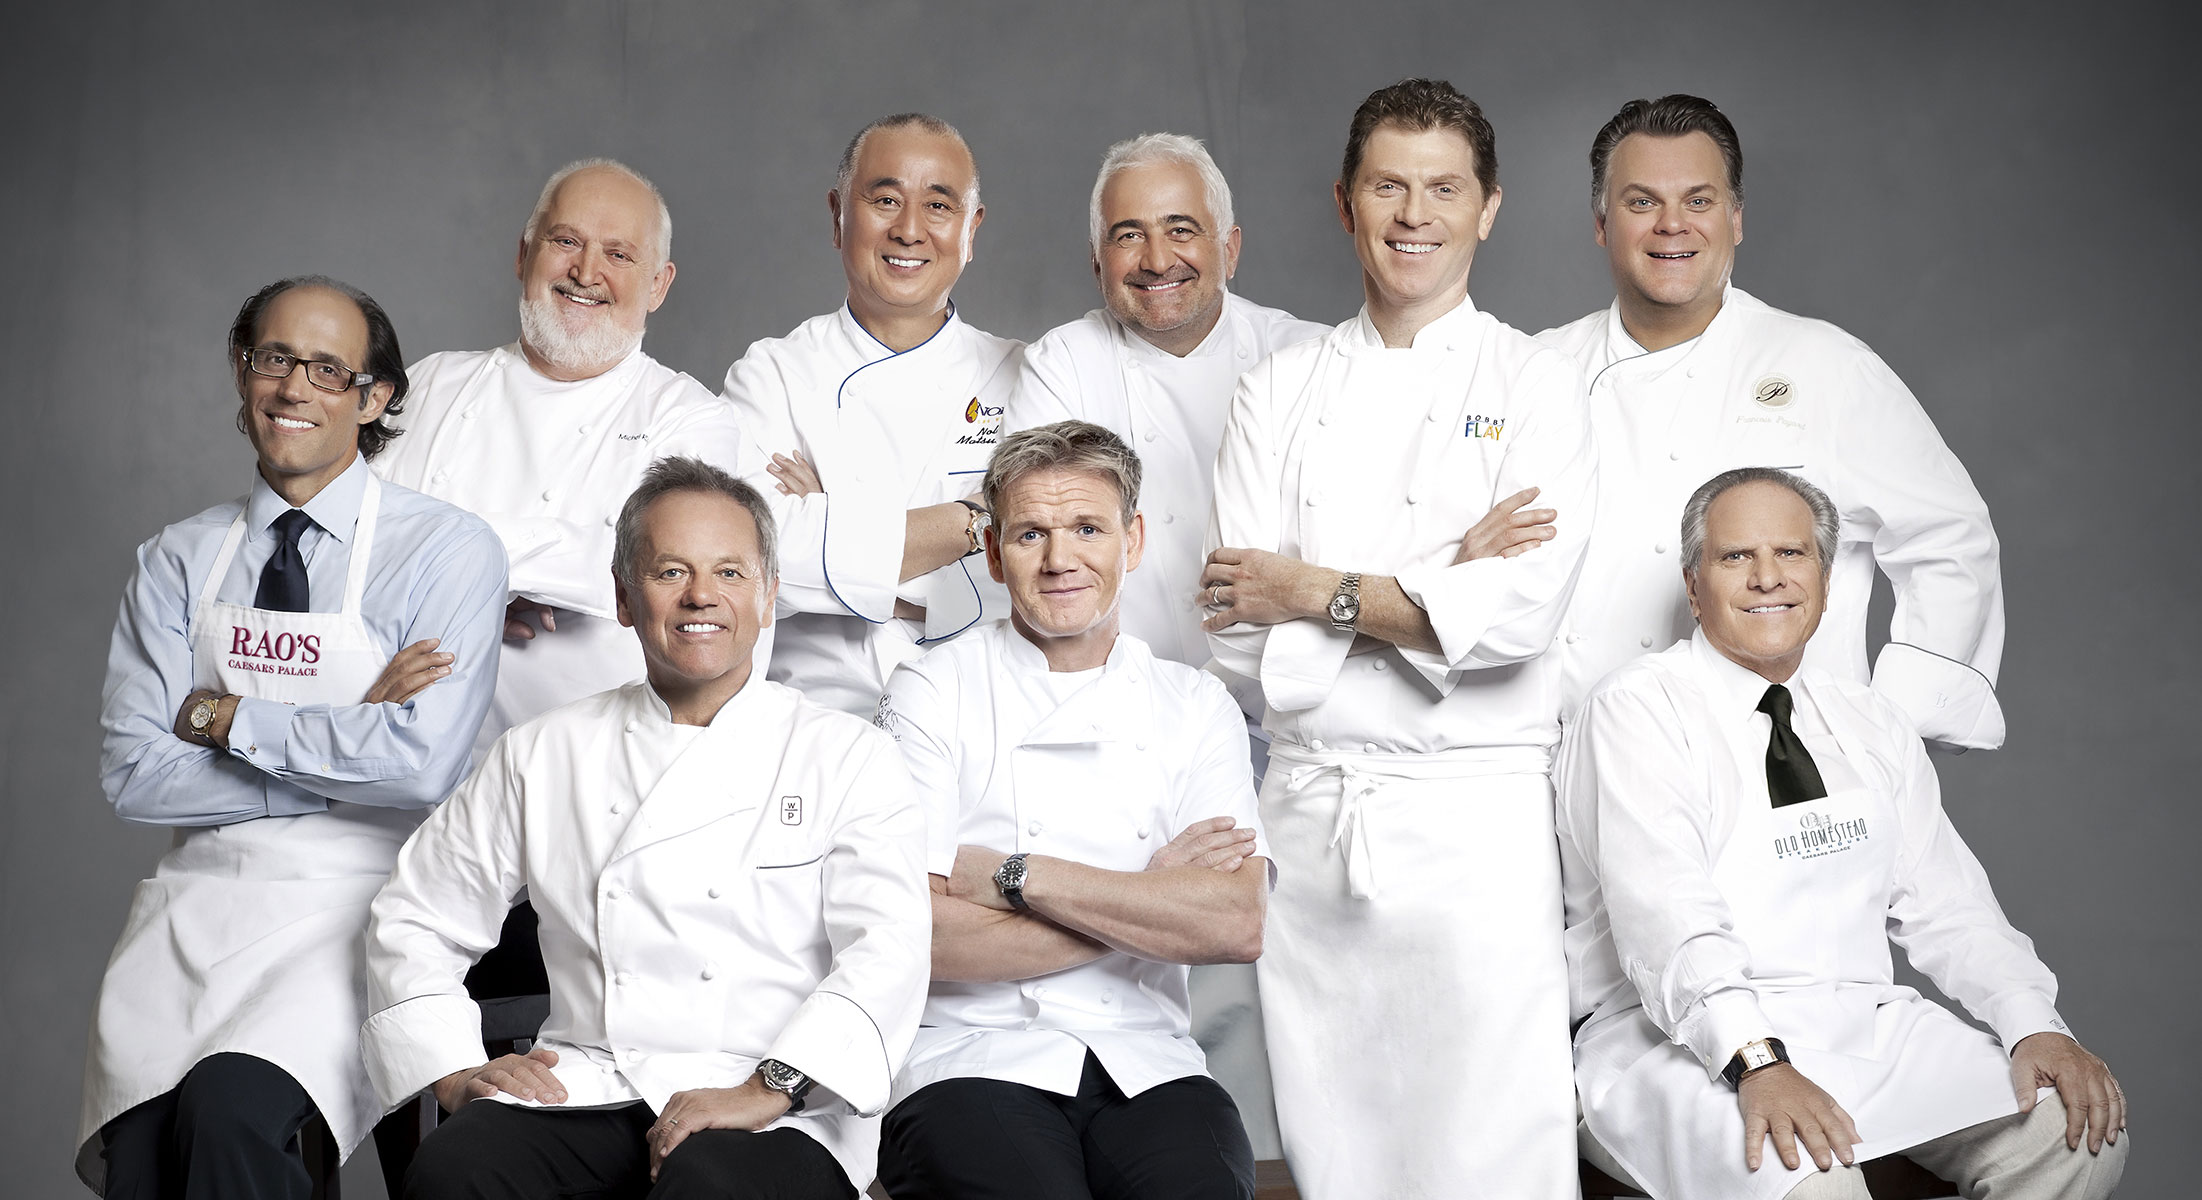 Caesars Palace Chef photography